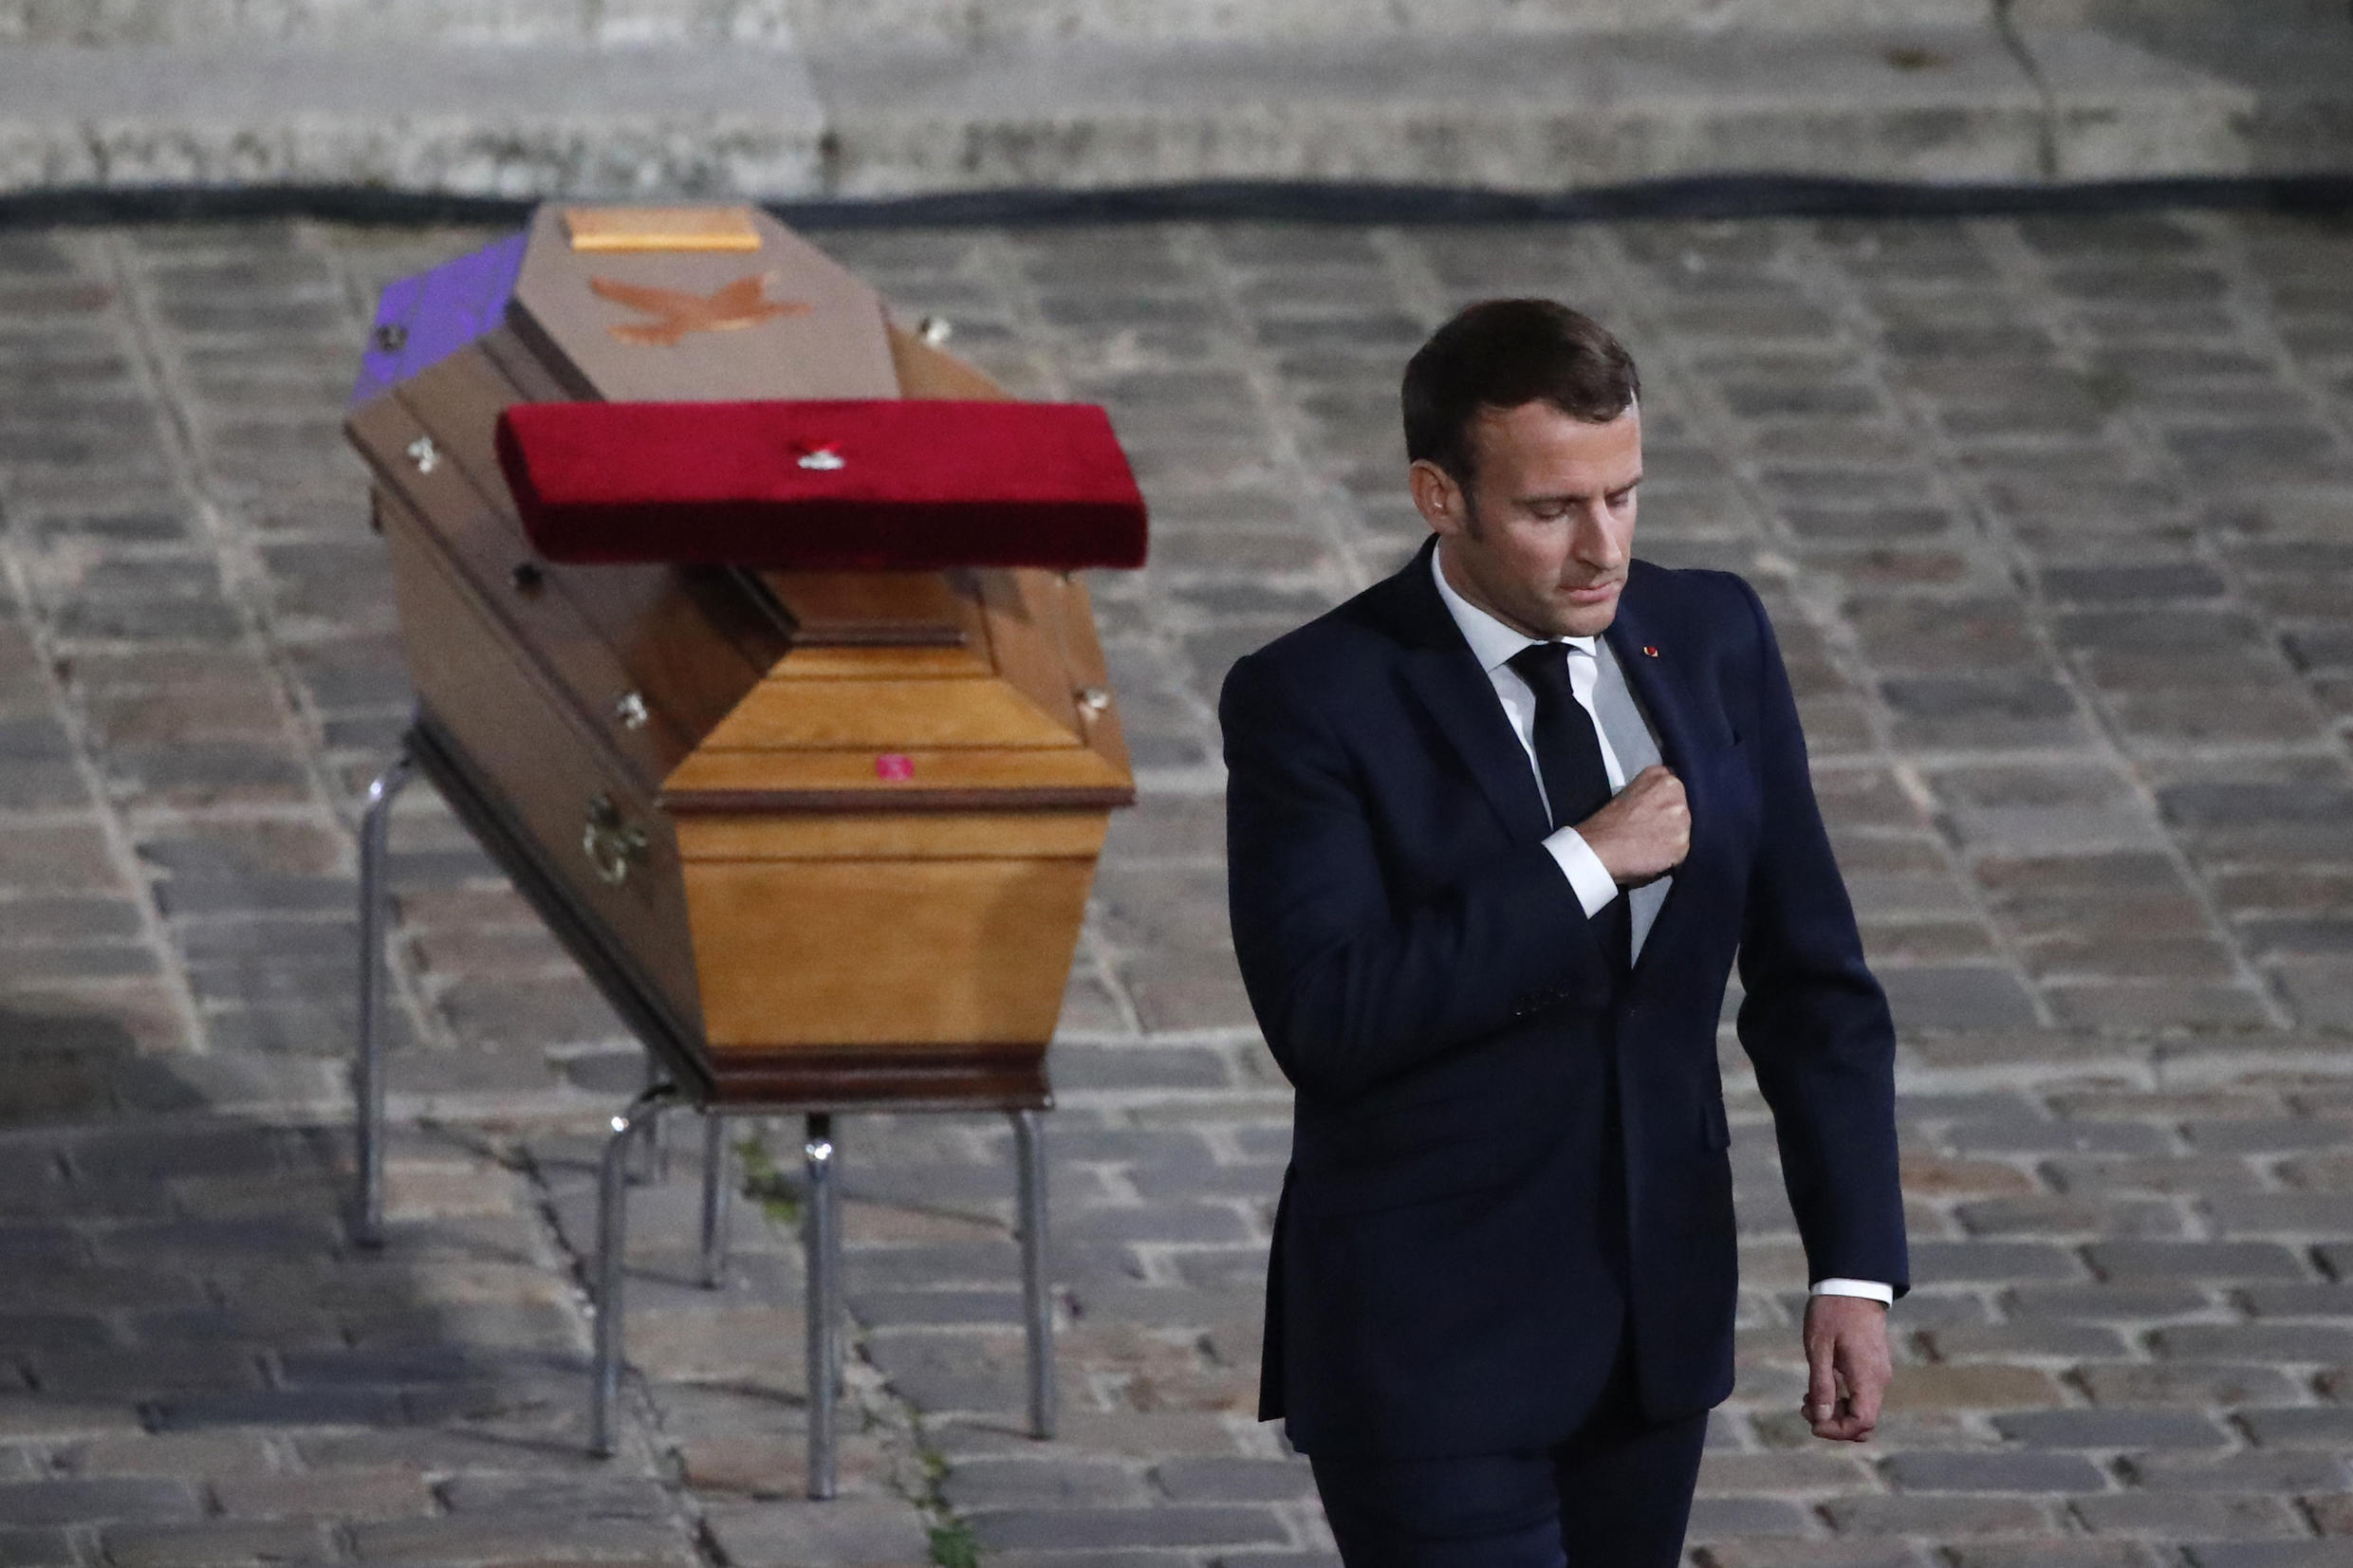 President Emmanuel Macron defended France's strict brand of secularism when he paid tribute to schoolteacher Samuel Paty, who was beheaded after showing his class cartoons of the Prophet Mohammed in a lesson on free speech